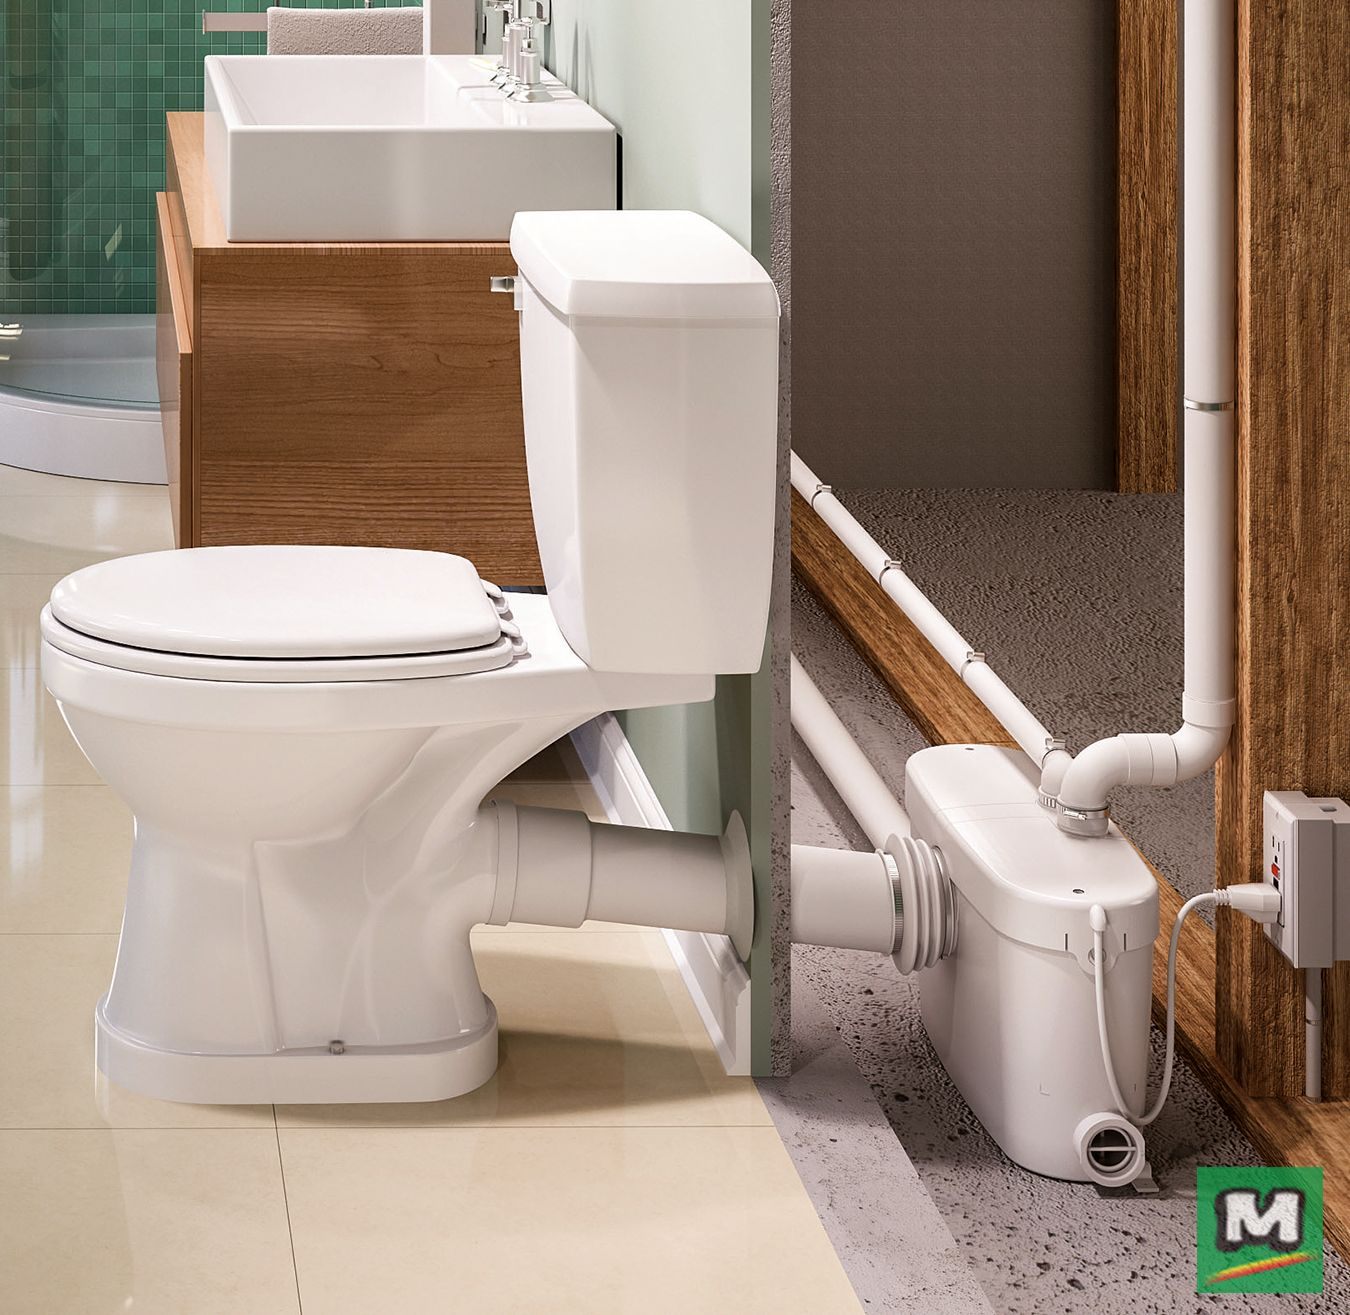 small resolution of install a basement bathroom without the need to break concrete the sanipro macerating toilet system is a breeze to install virtually anywhere with a power